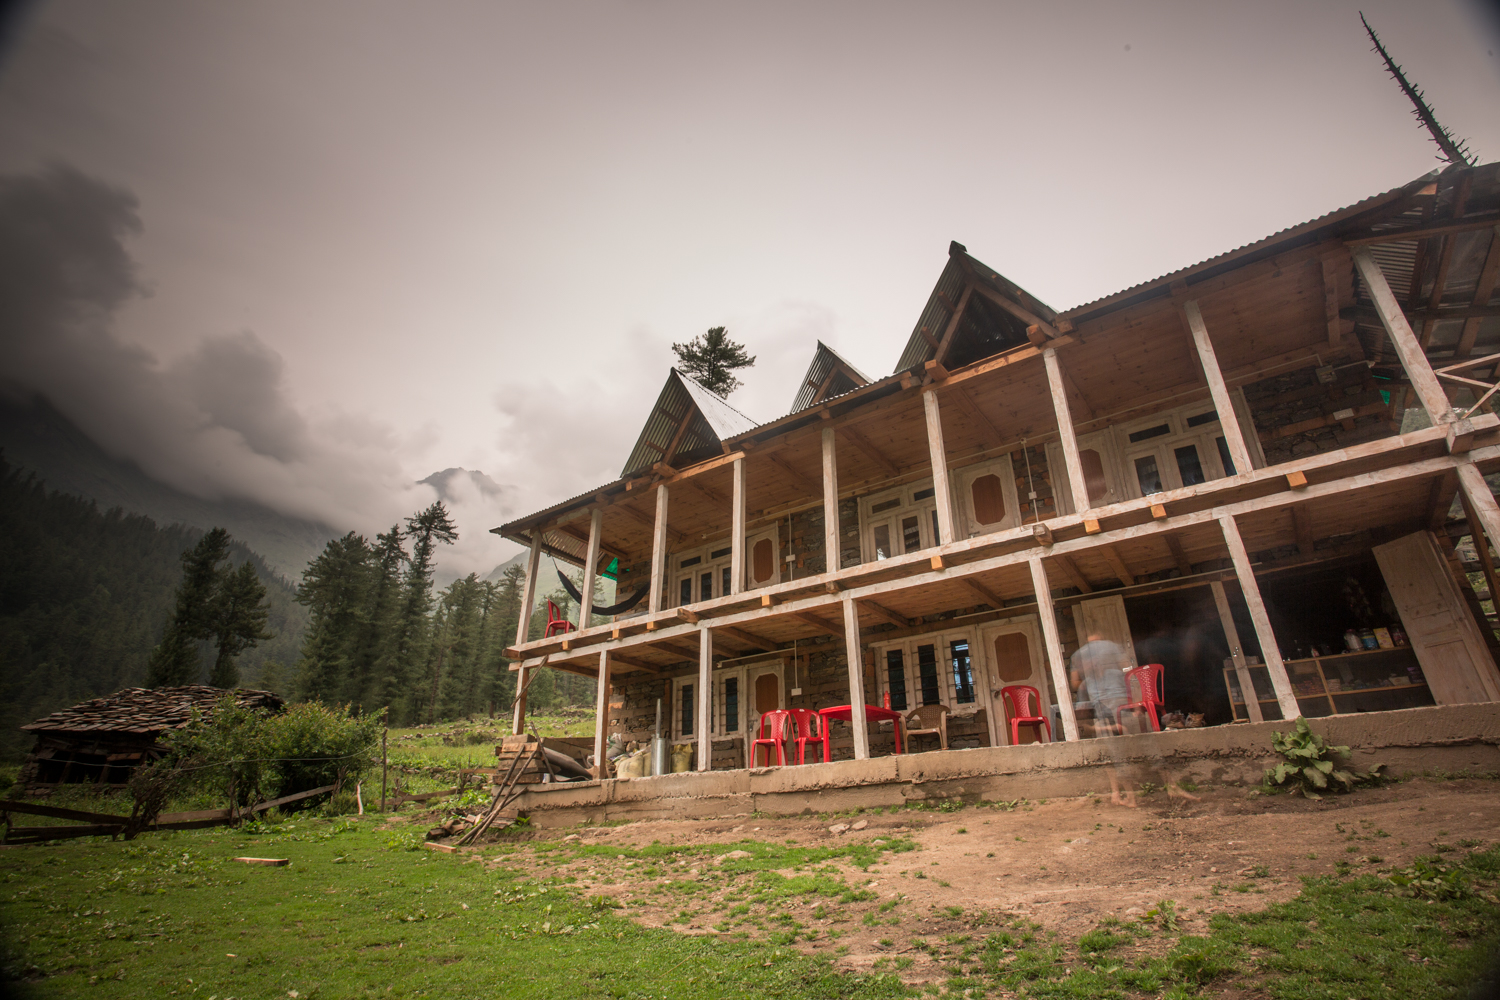 Our guesthouse in the newly developed outpost of Kulta. The building took four men four months to build. Marijuana is farmed in the surrounding mountains.